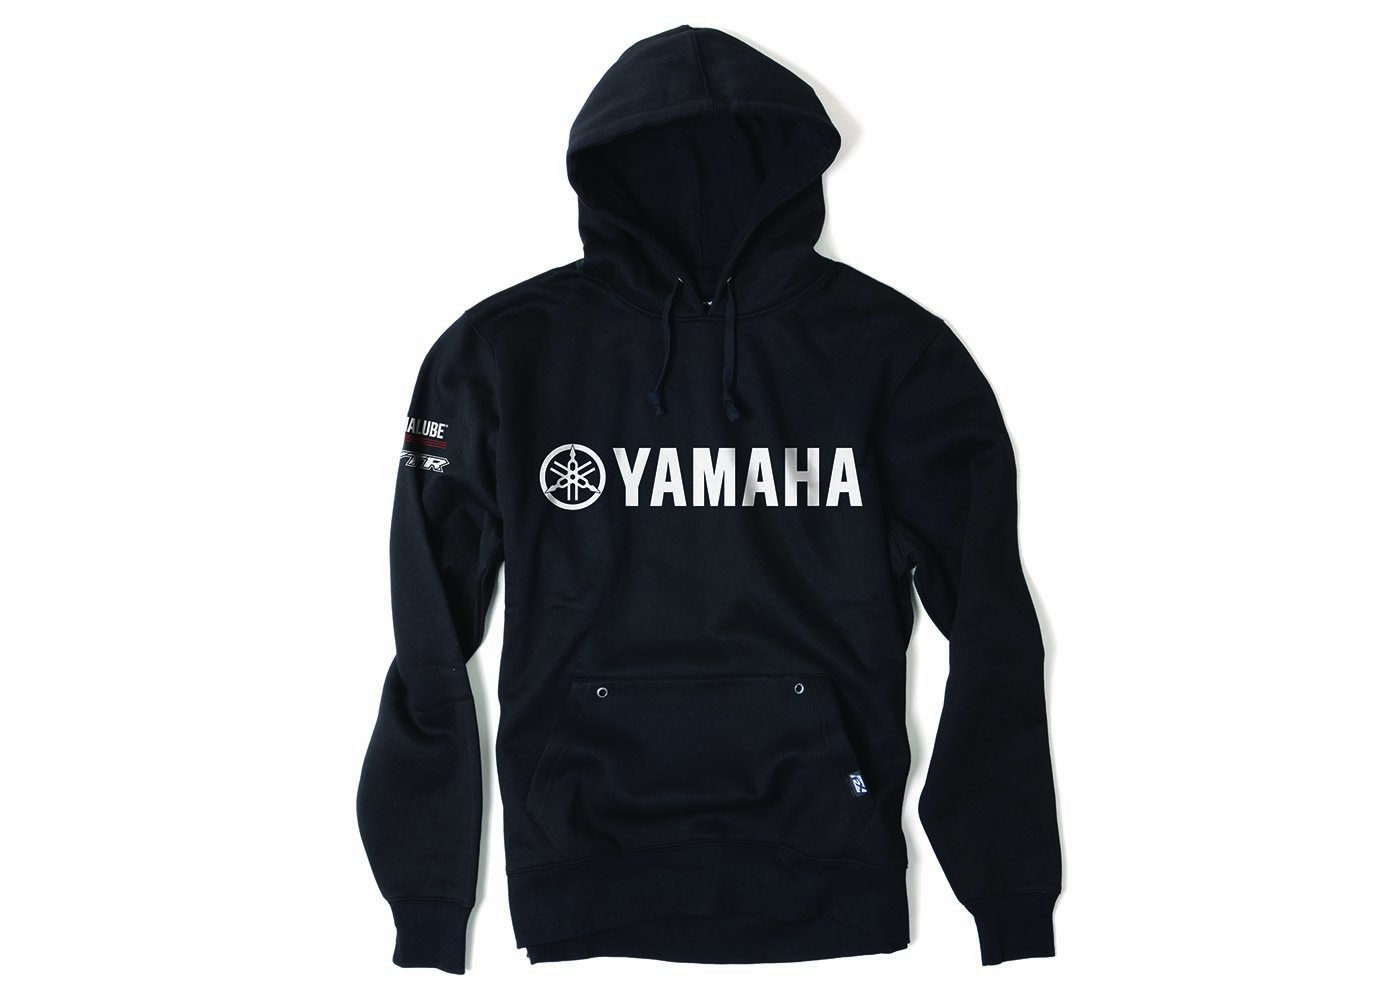 Factory Effex 'YAMAHA' Team Pullover Sweatshirt (Black, Medium) 16-88232